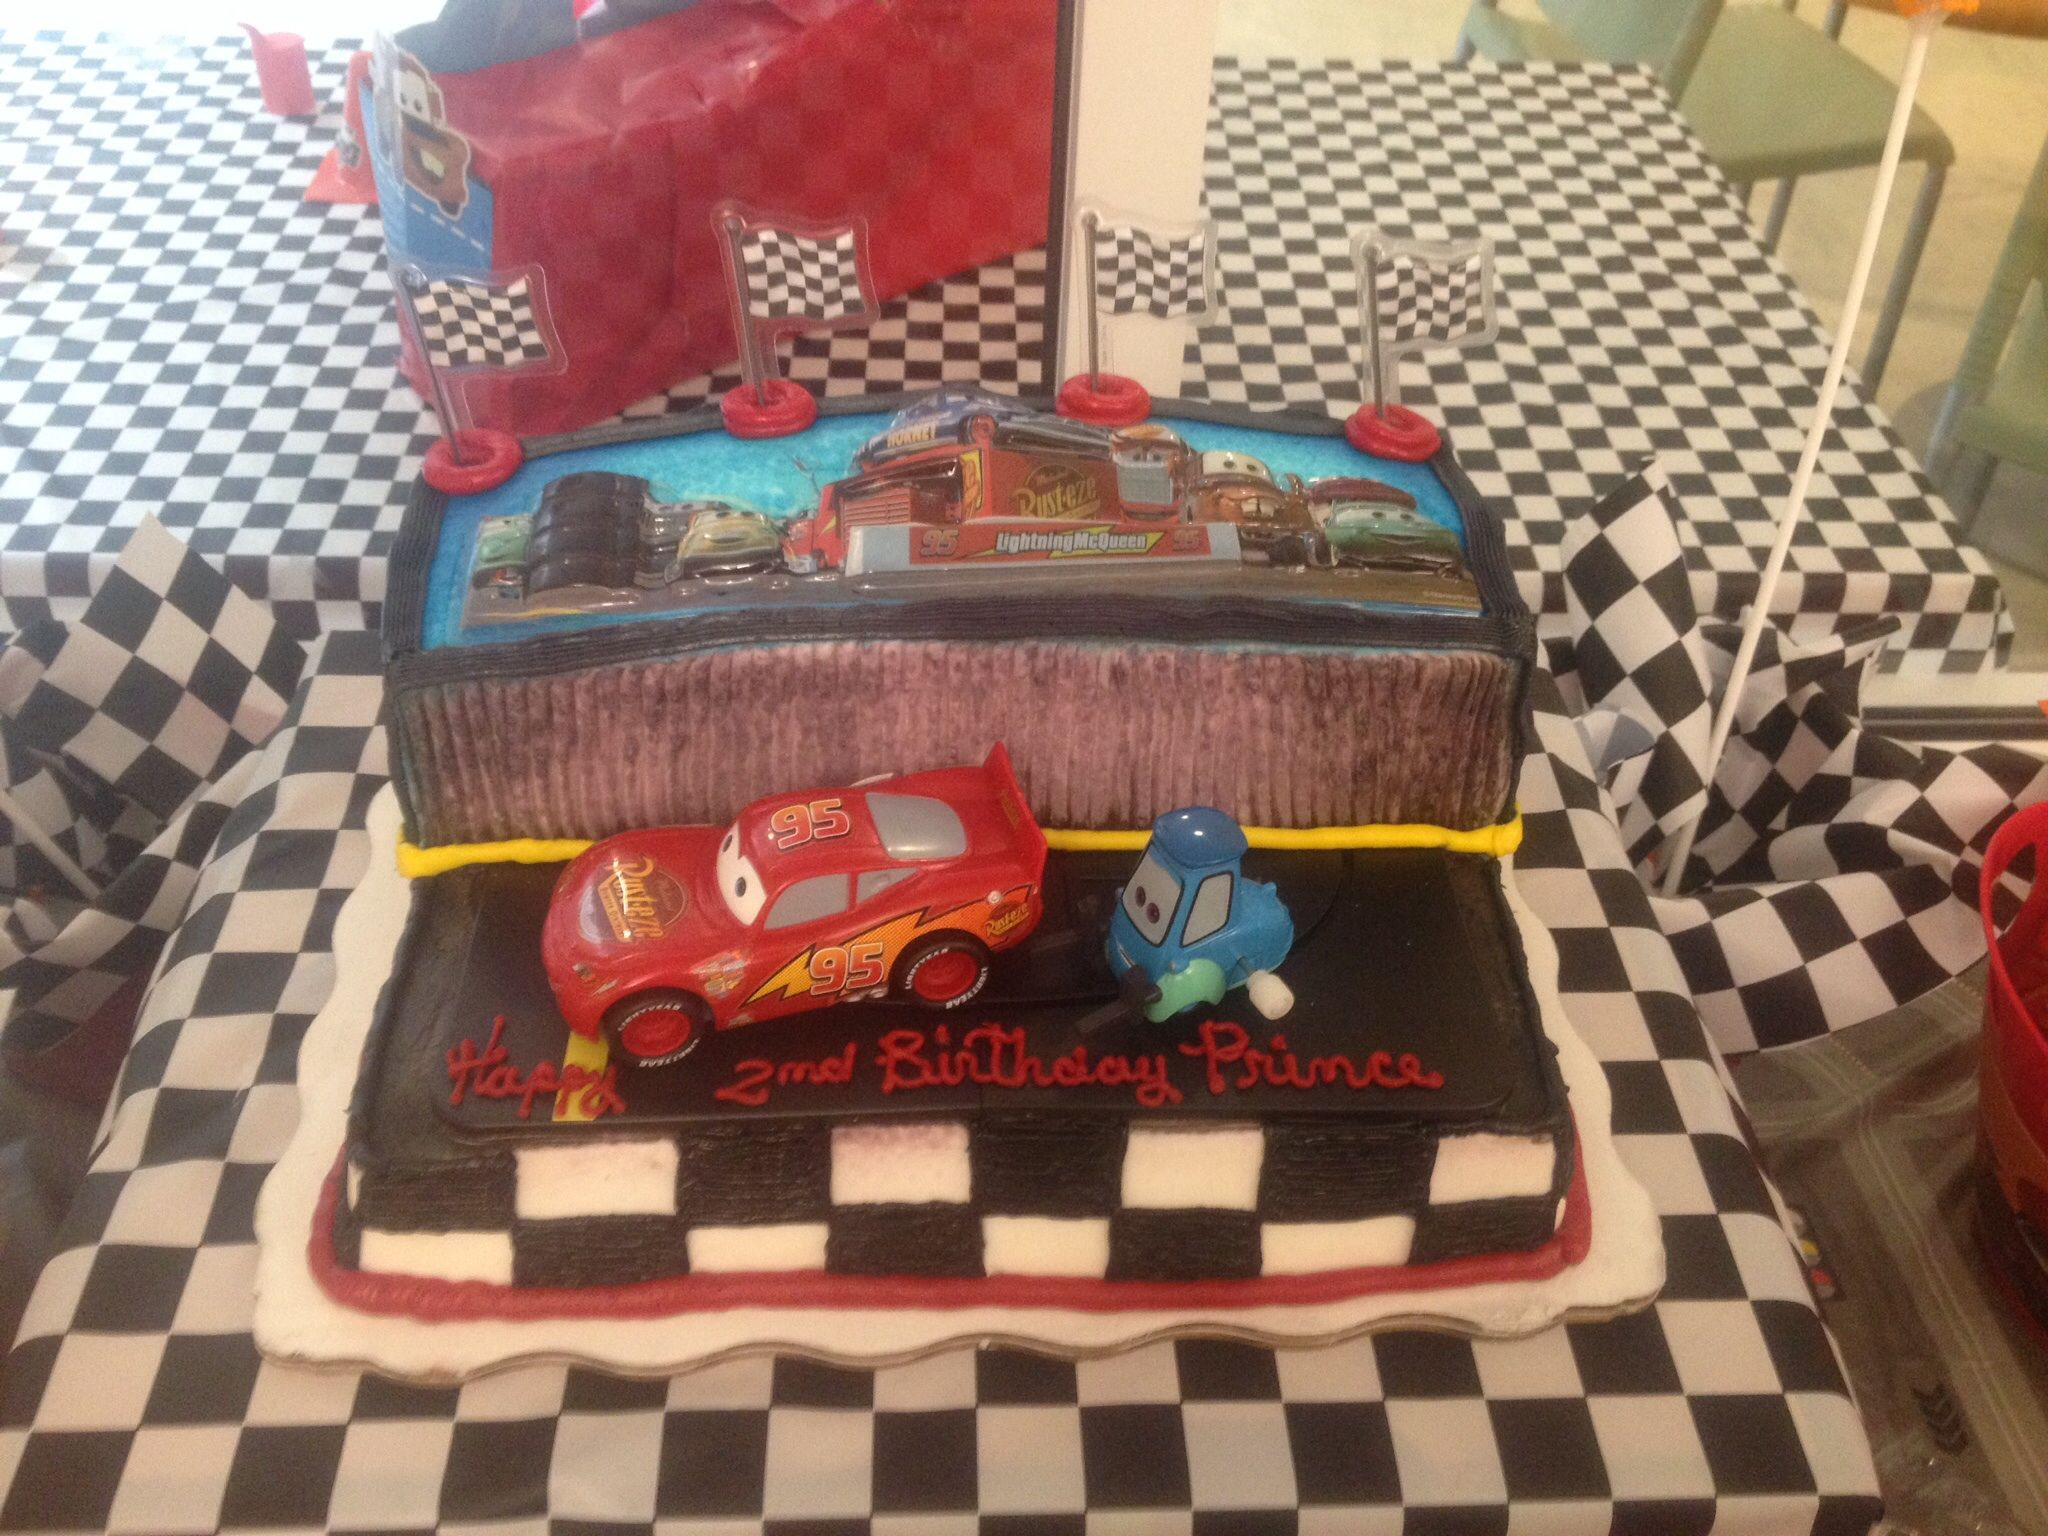 Marvelous Cars Birthday Cake From Walmart With Images Cars Birthday Birthday Cards Printable Opercafe Filternl